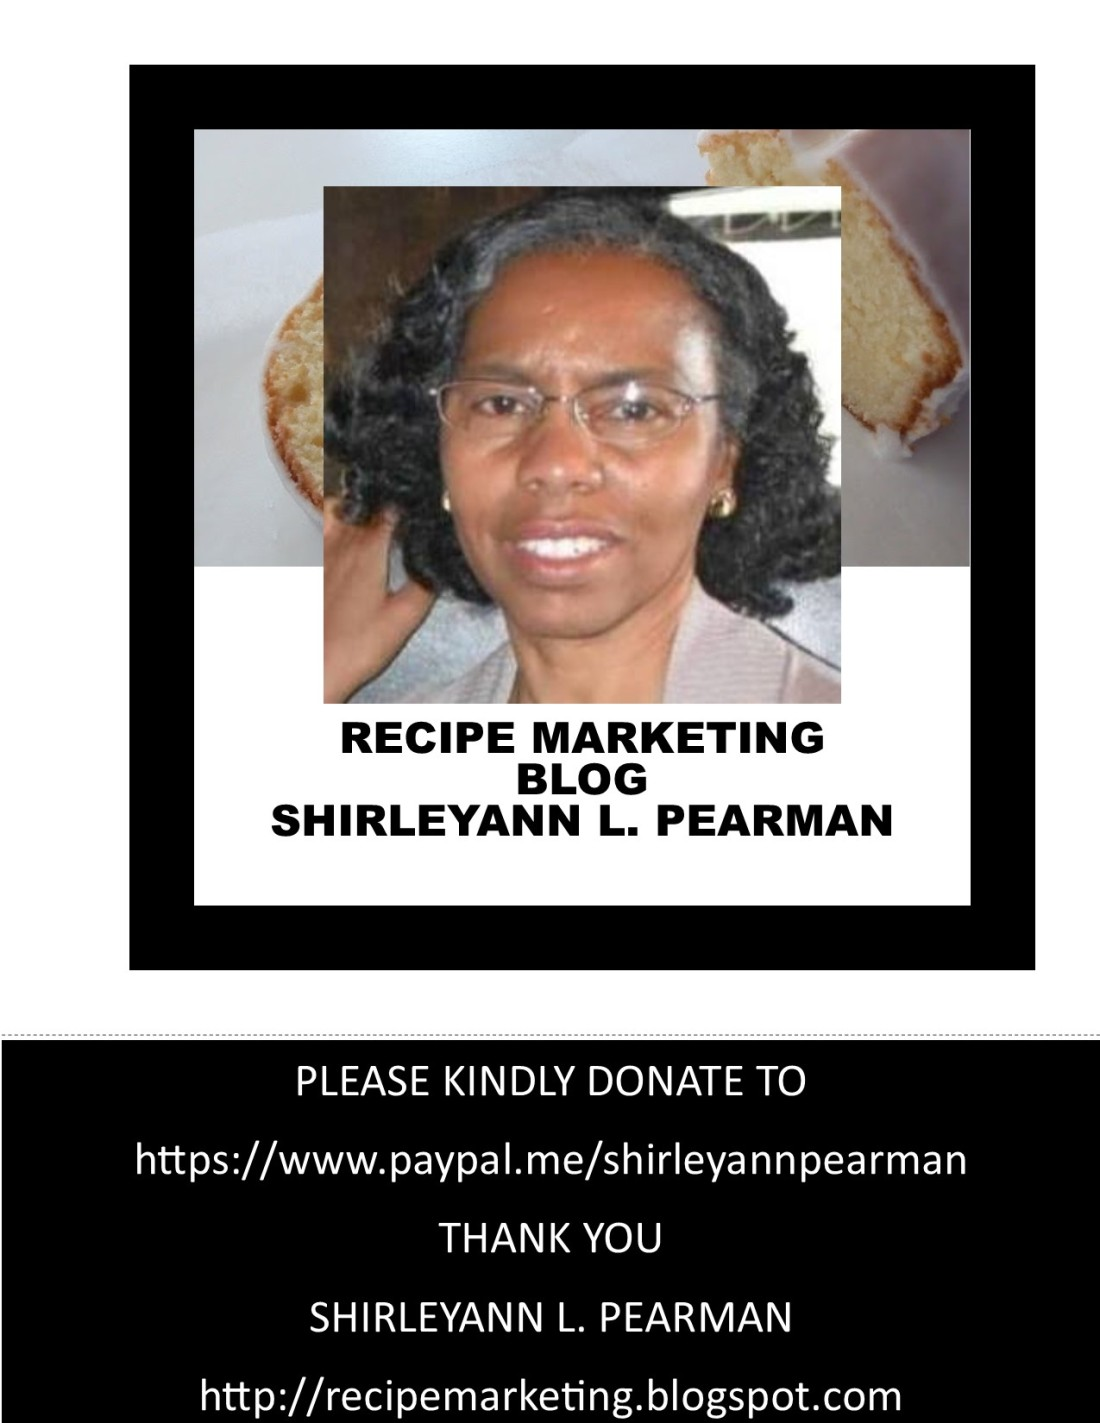 Recipe Marketing BLOG donate ad